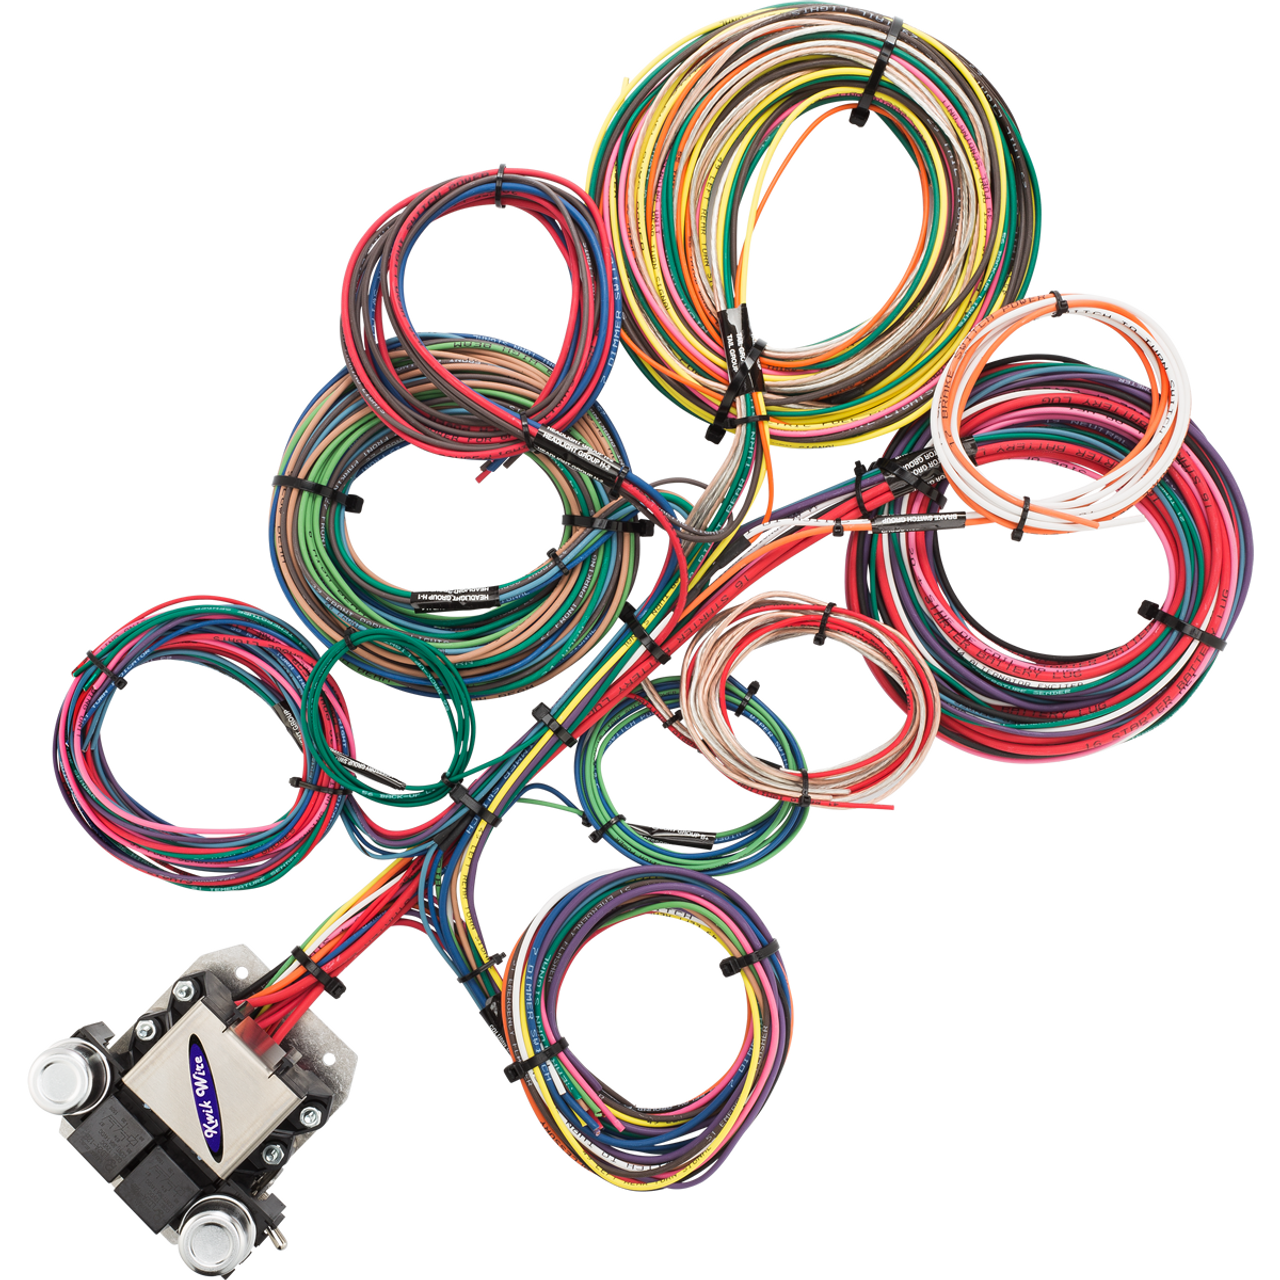 8 circuit wire harness kwikwire com electrify your ride rh kwikwire com Quickwire Communications Quickwire in Push